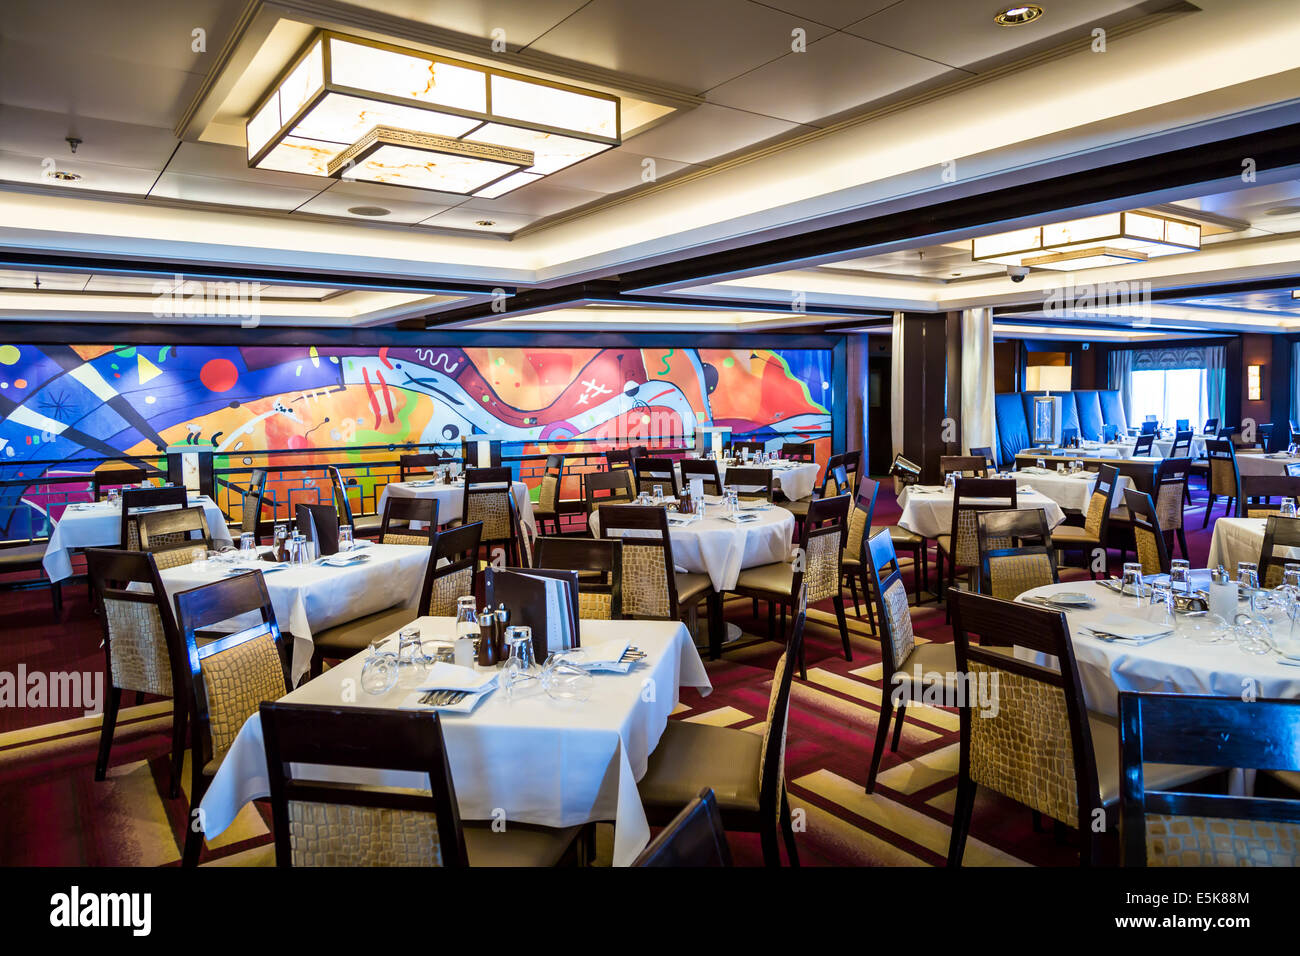 The Manhattan Restaurant on the Norwegian Epic cruise ship. - Stock Image